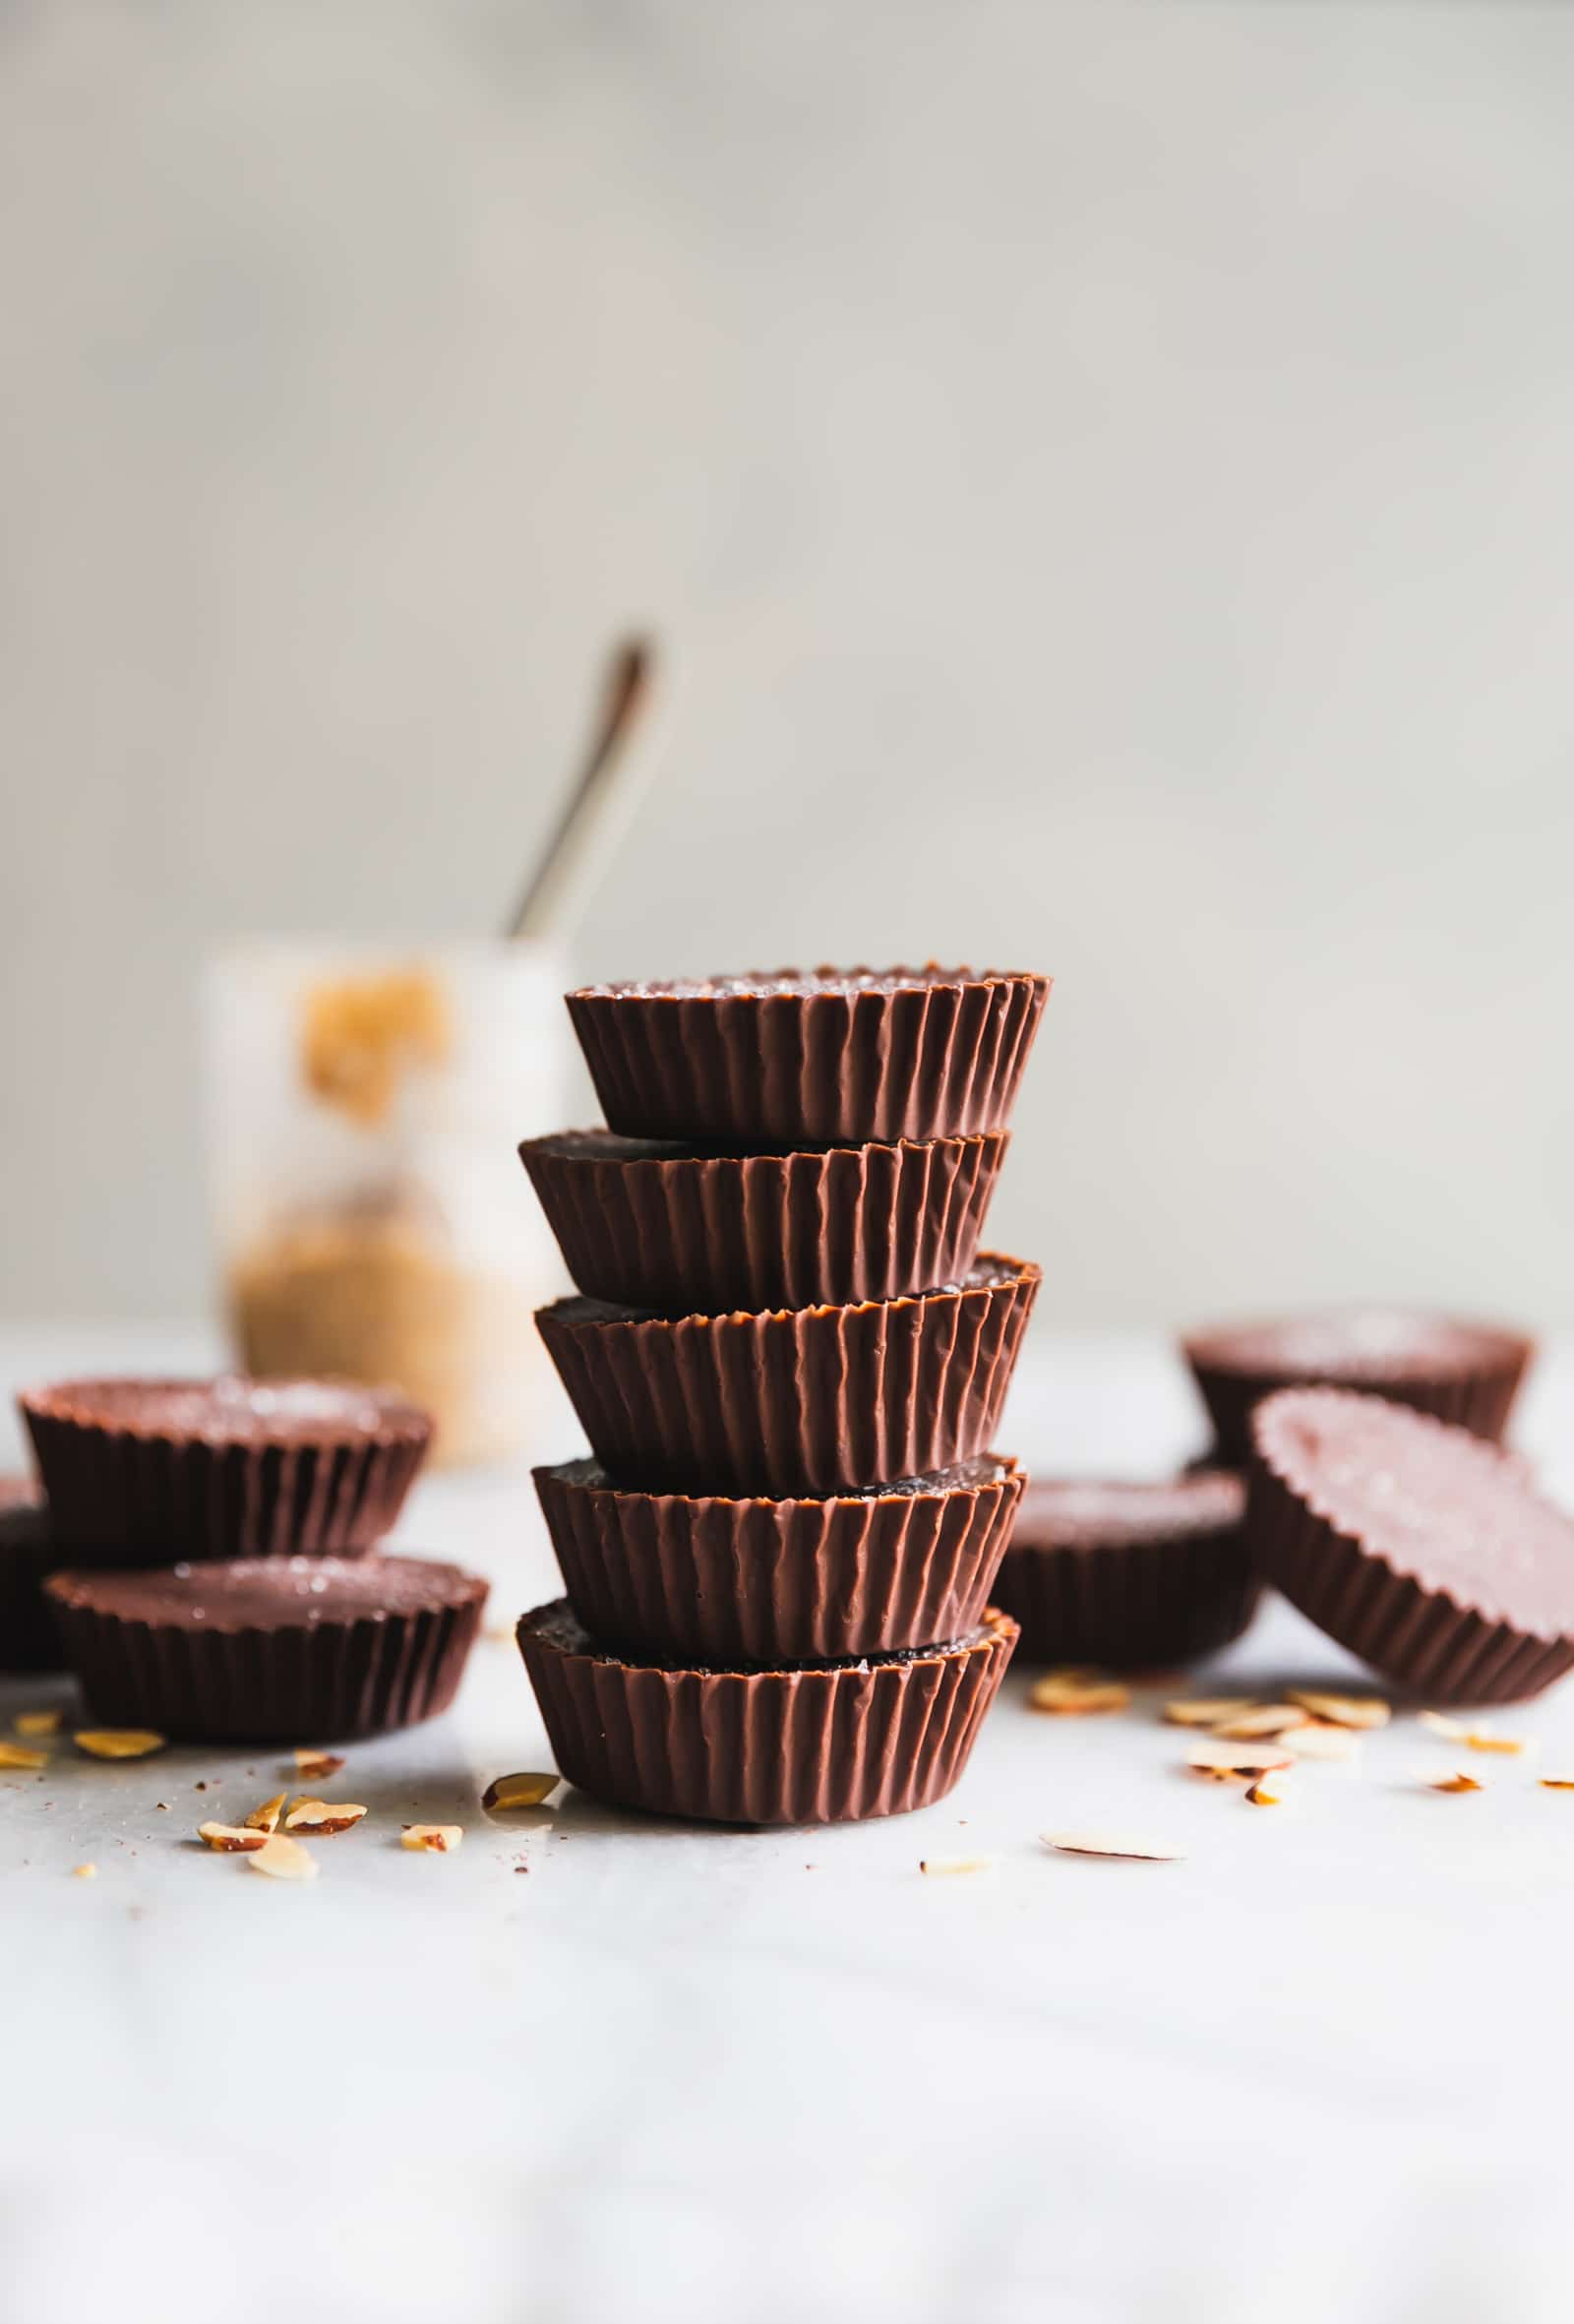 These almond butter cups are made with just 5 ingredients -  dark chocolate, coconut oil, almond butter, chopped almonds, and sea salt. Perfect snack!